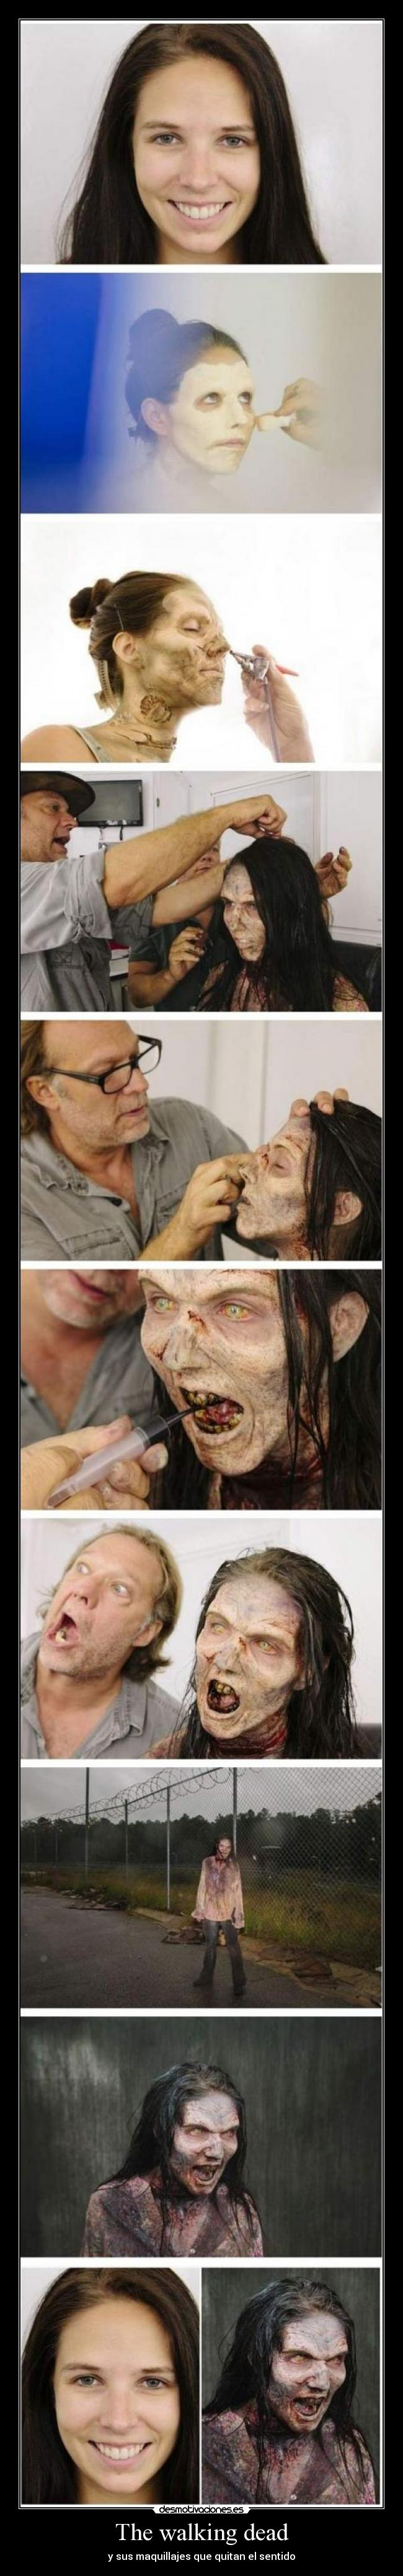 The walking dead - y sus maquillajes que quitan el sentido